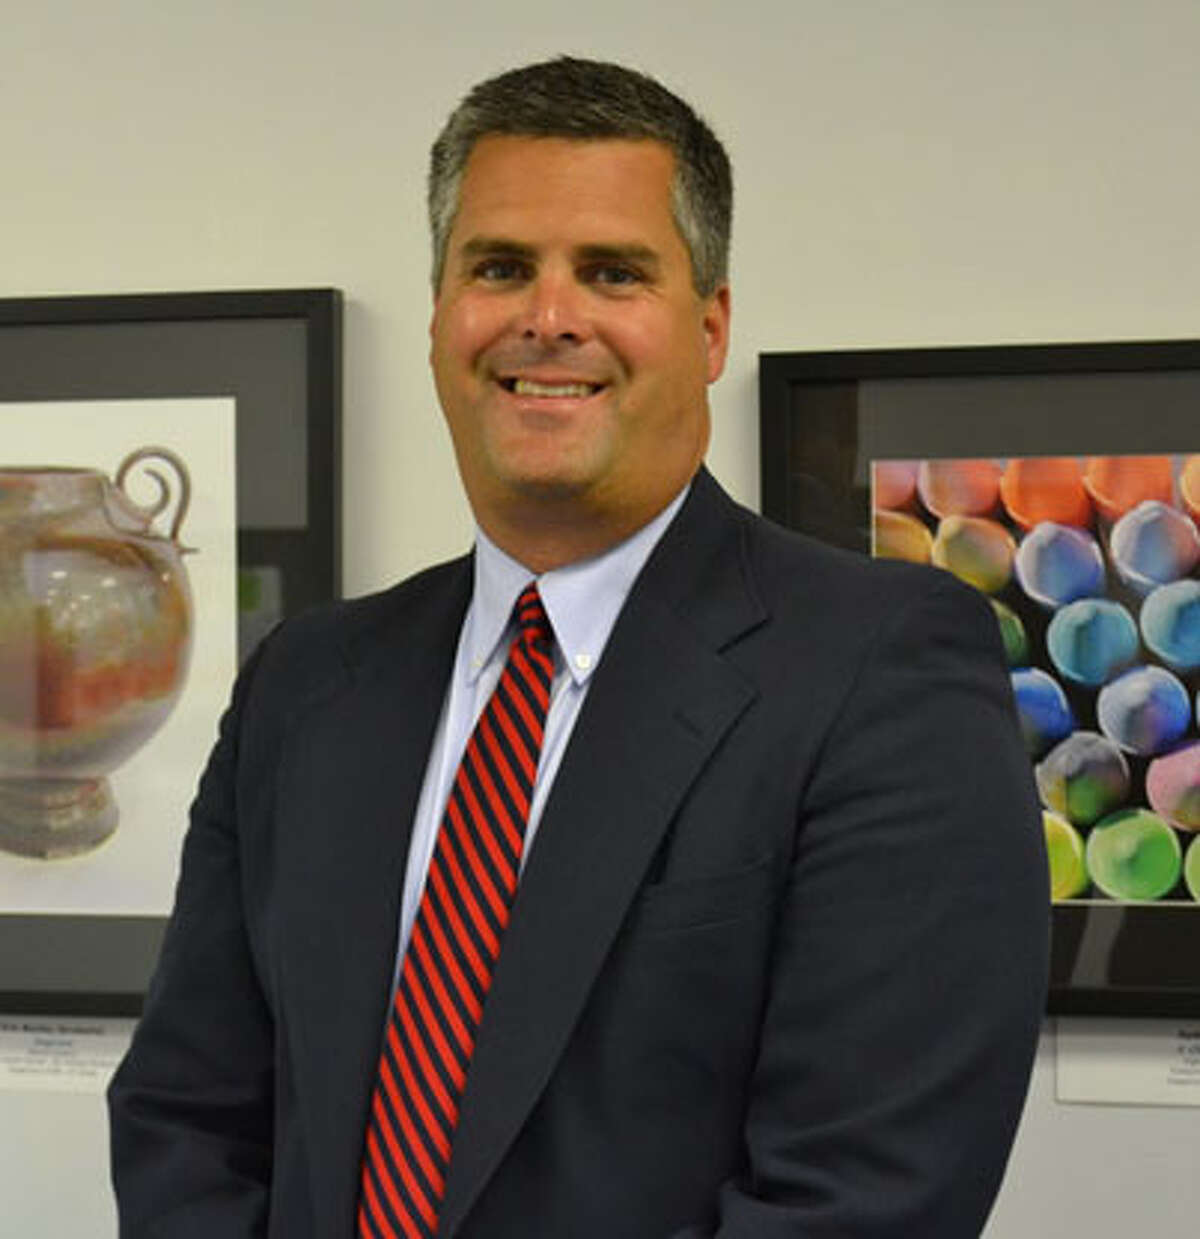 Michael Patton is Superintendent of Schools at Saratoga Springs City School district.